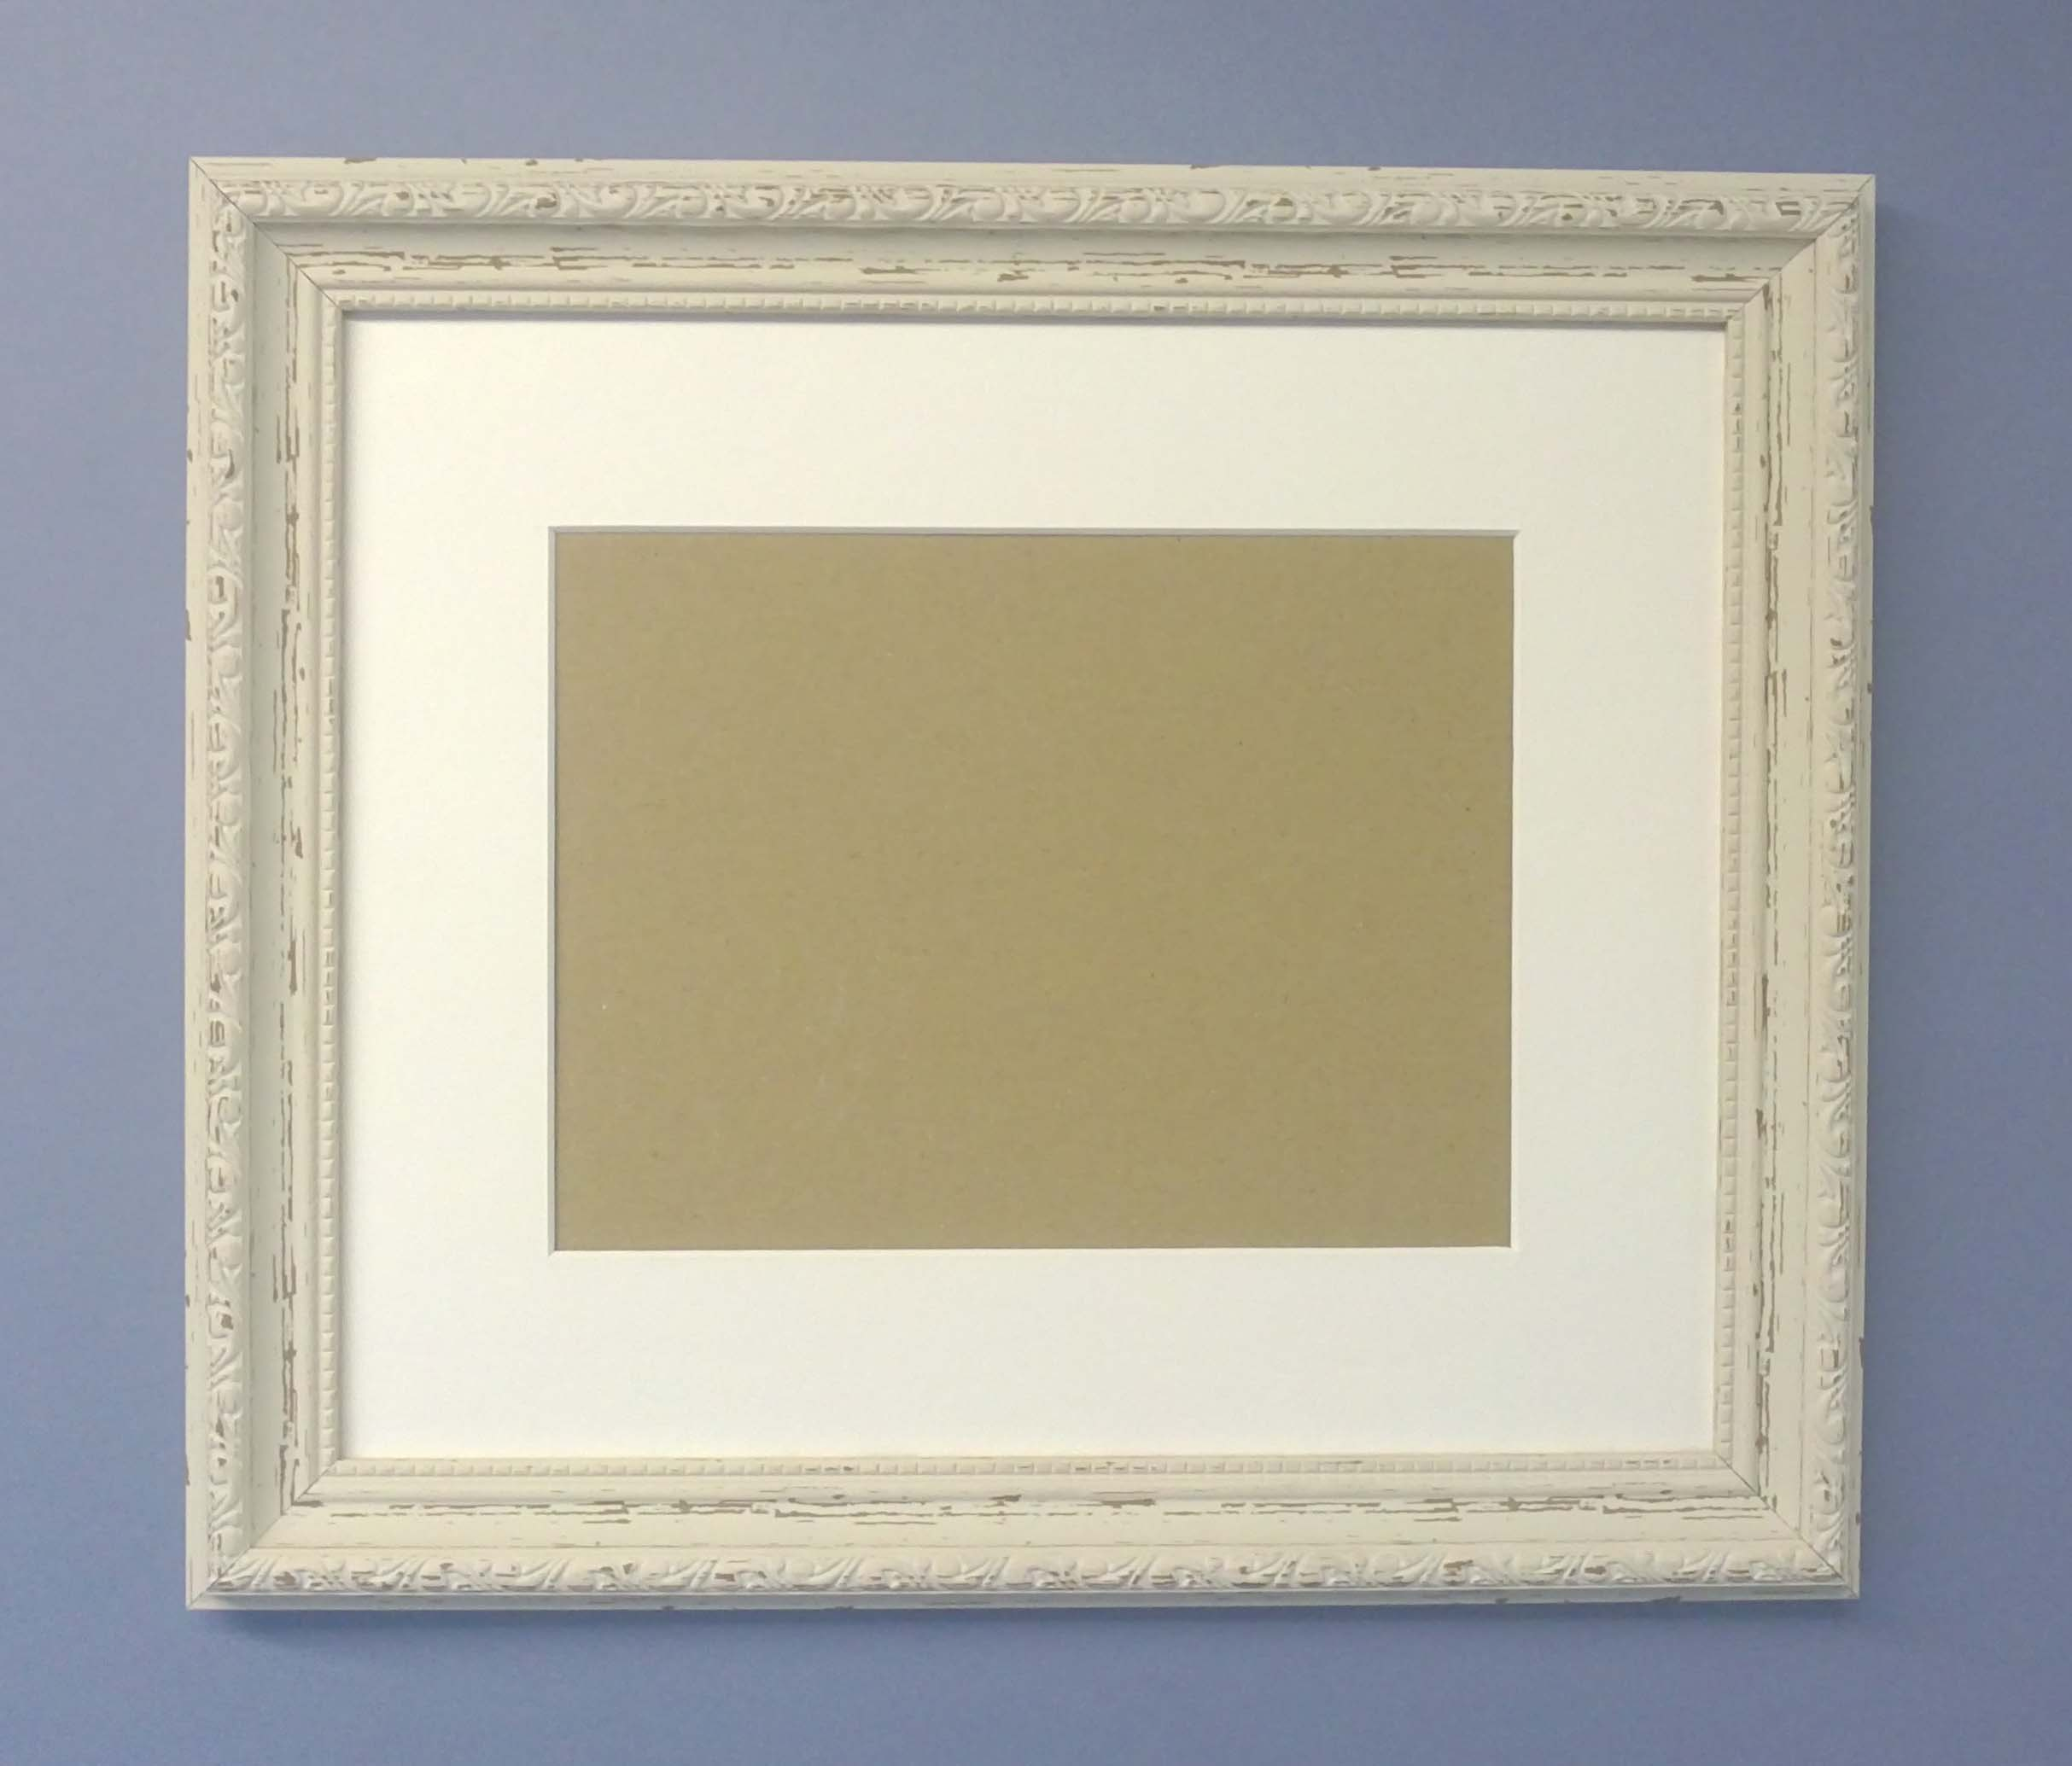 18x18 ready made picture frames rh peaklandarts com small white shabby chic frames white shabby chic picture frames